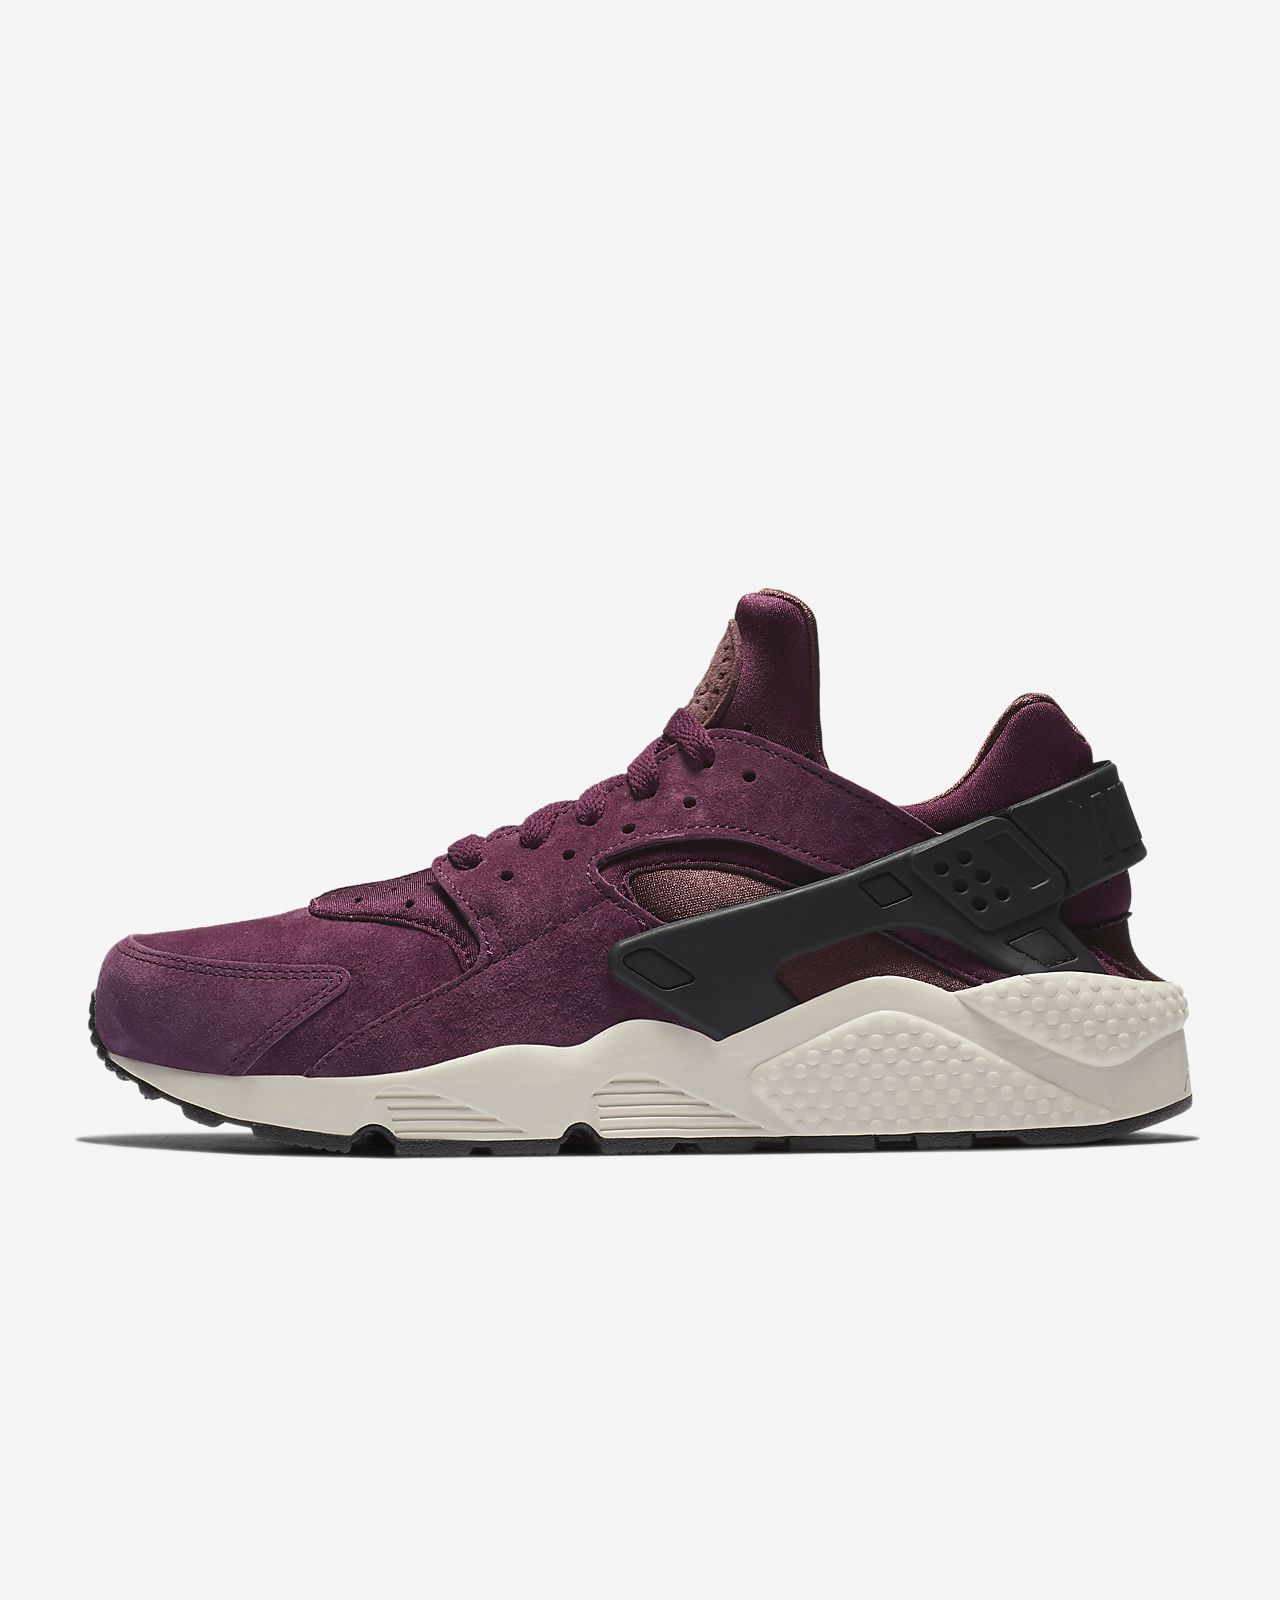 5e981283efab7 Low Resolution Nike Air Huarache Premium Men s Shoe Nike Air Huarache  Premium Men s Shoe